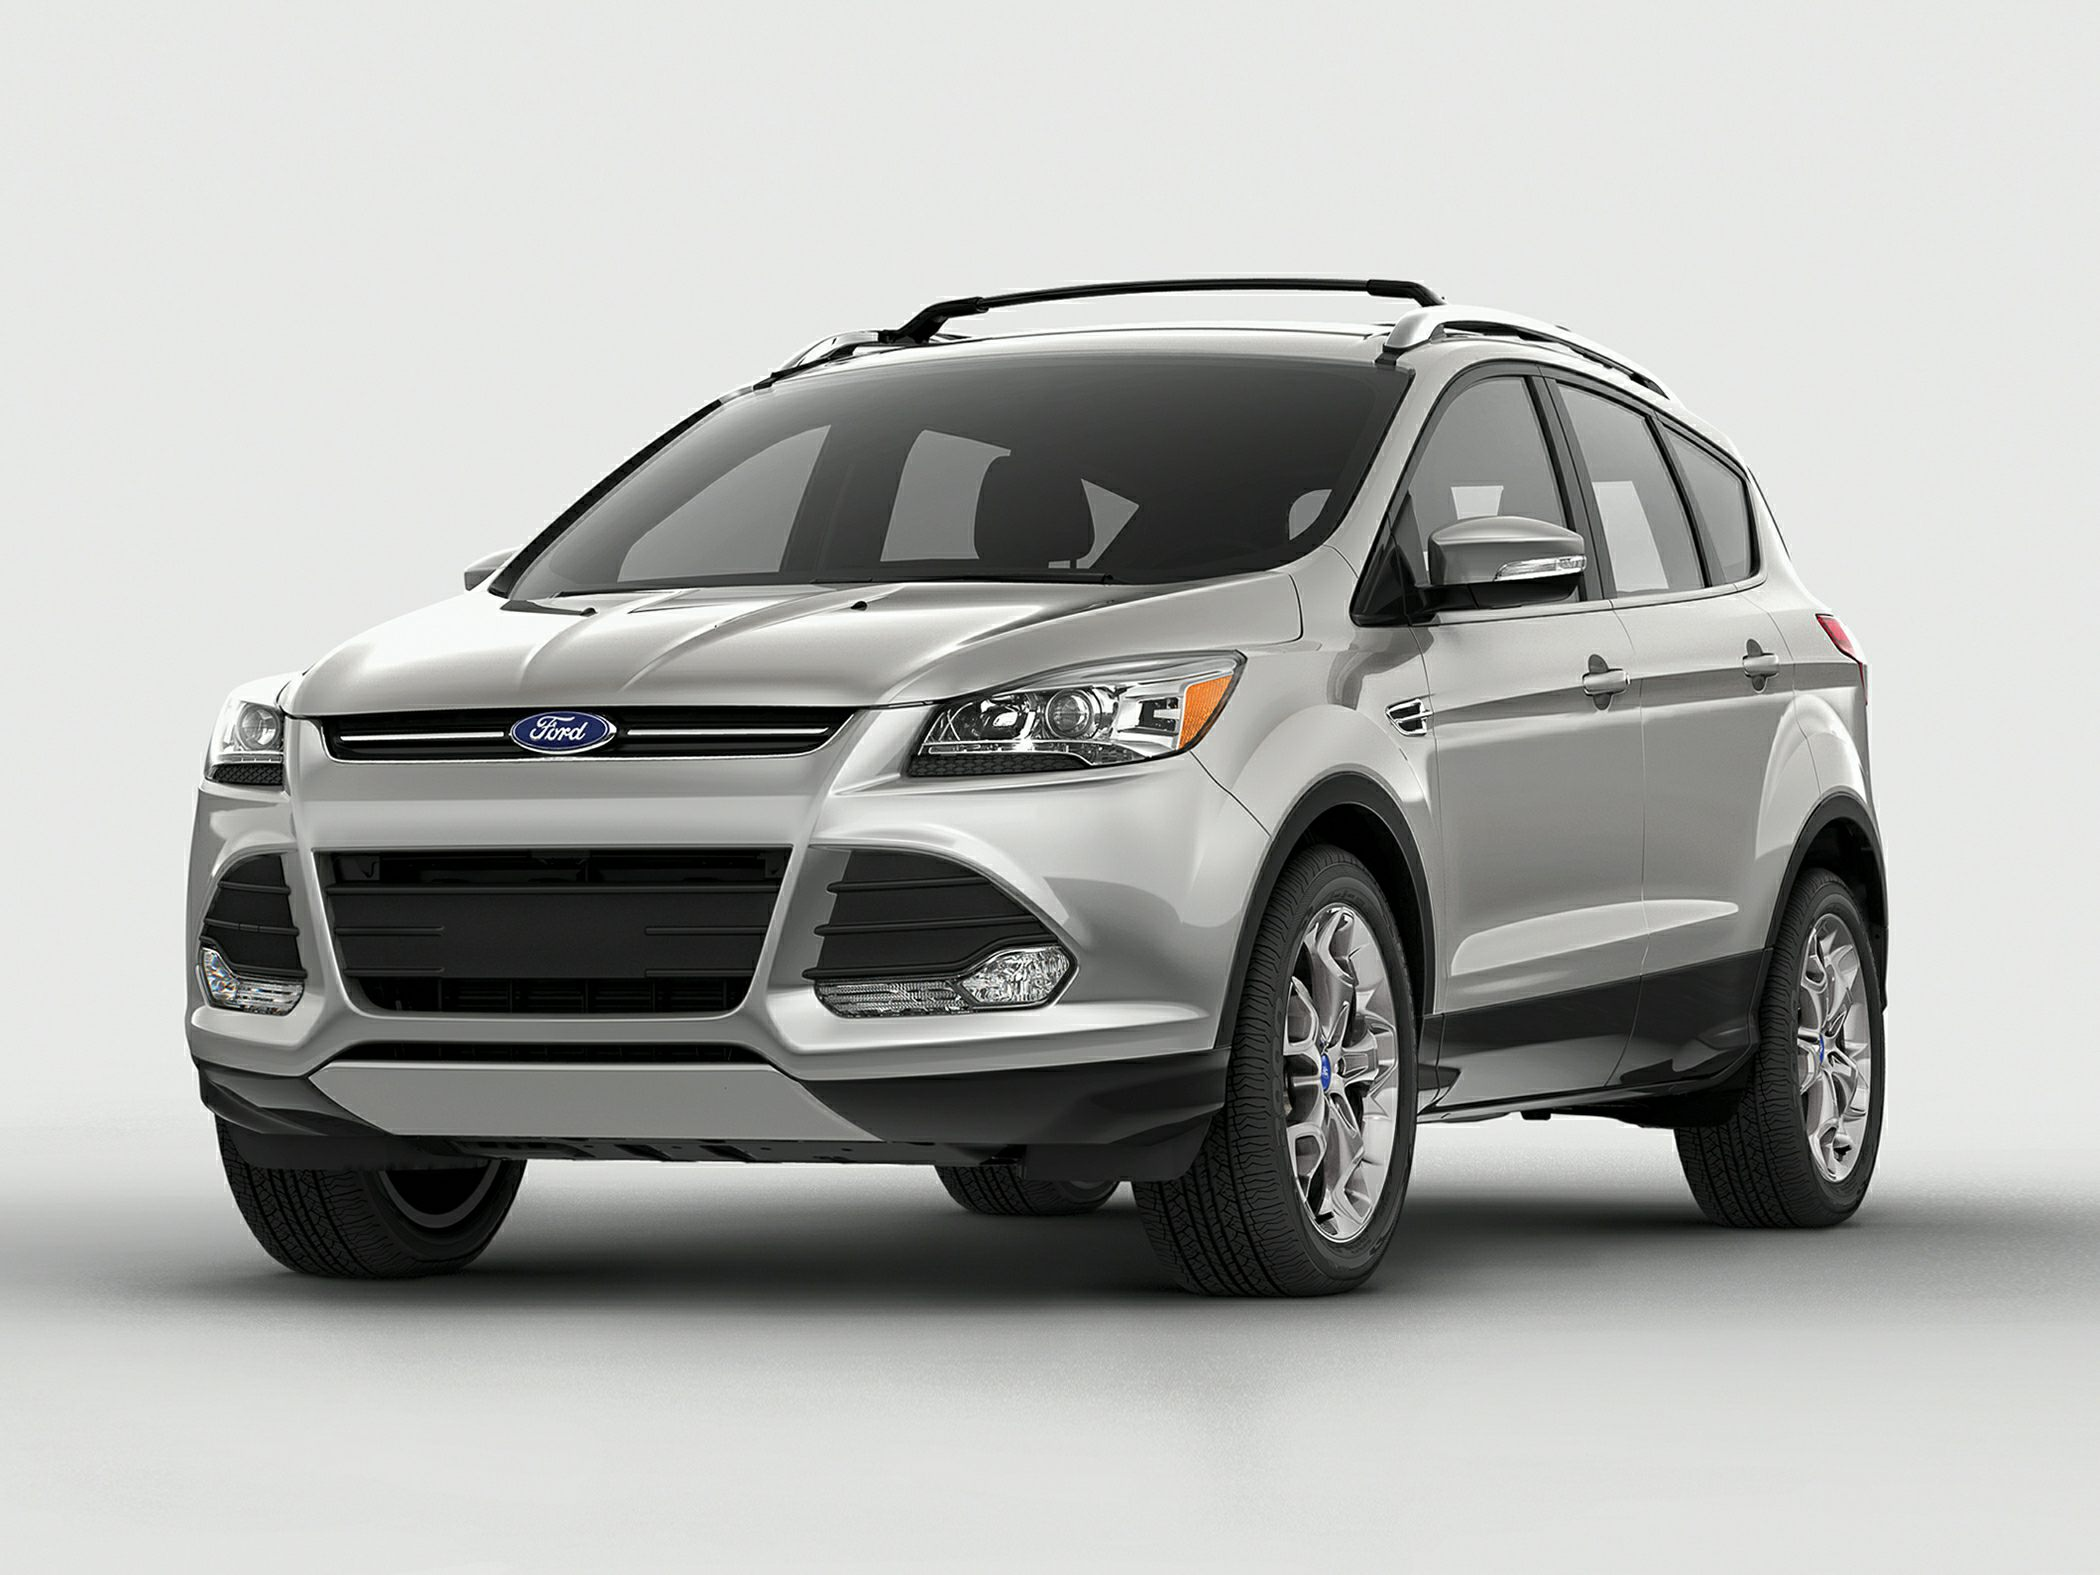 2014 Ford Escape Hybrid Free Download Image